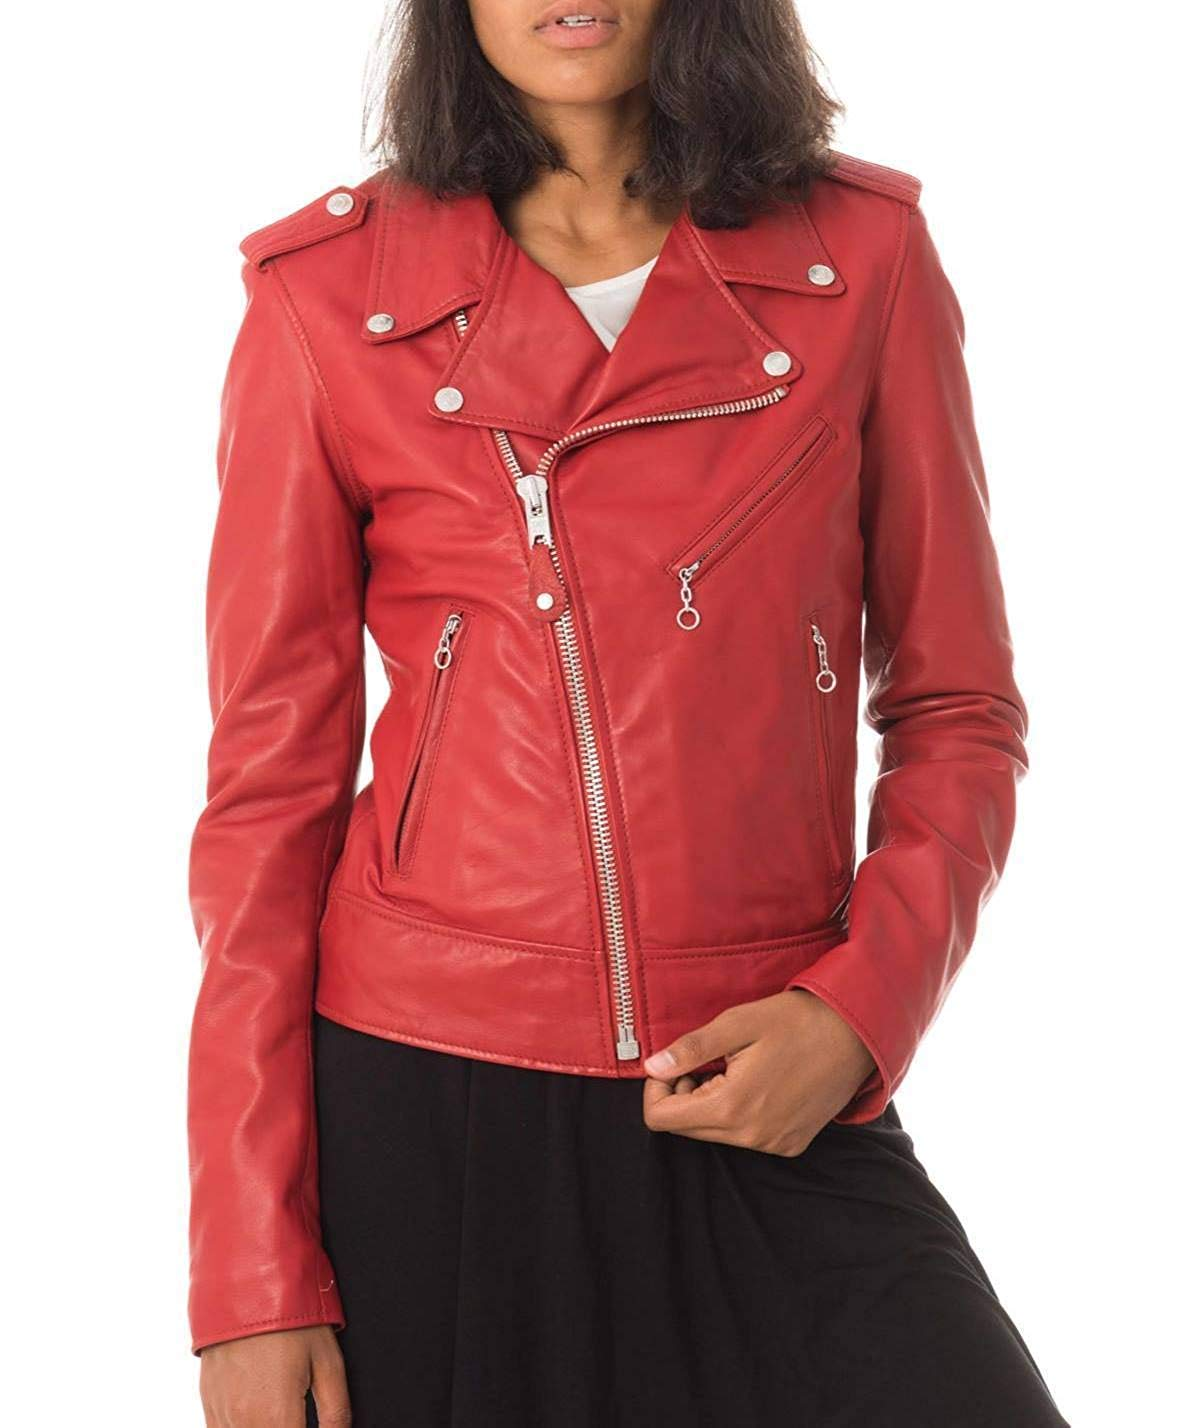 95cdeaca3af Get Quotations · Womens Leather Jacket Bomber Motorcycle Biker Real  Lambskin Leather Jacket for Womens Red